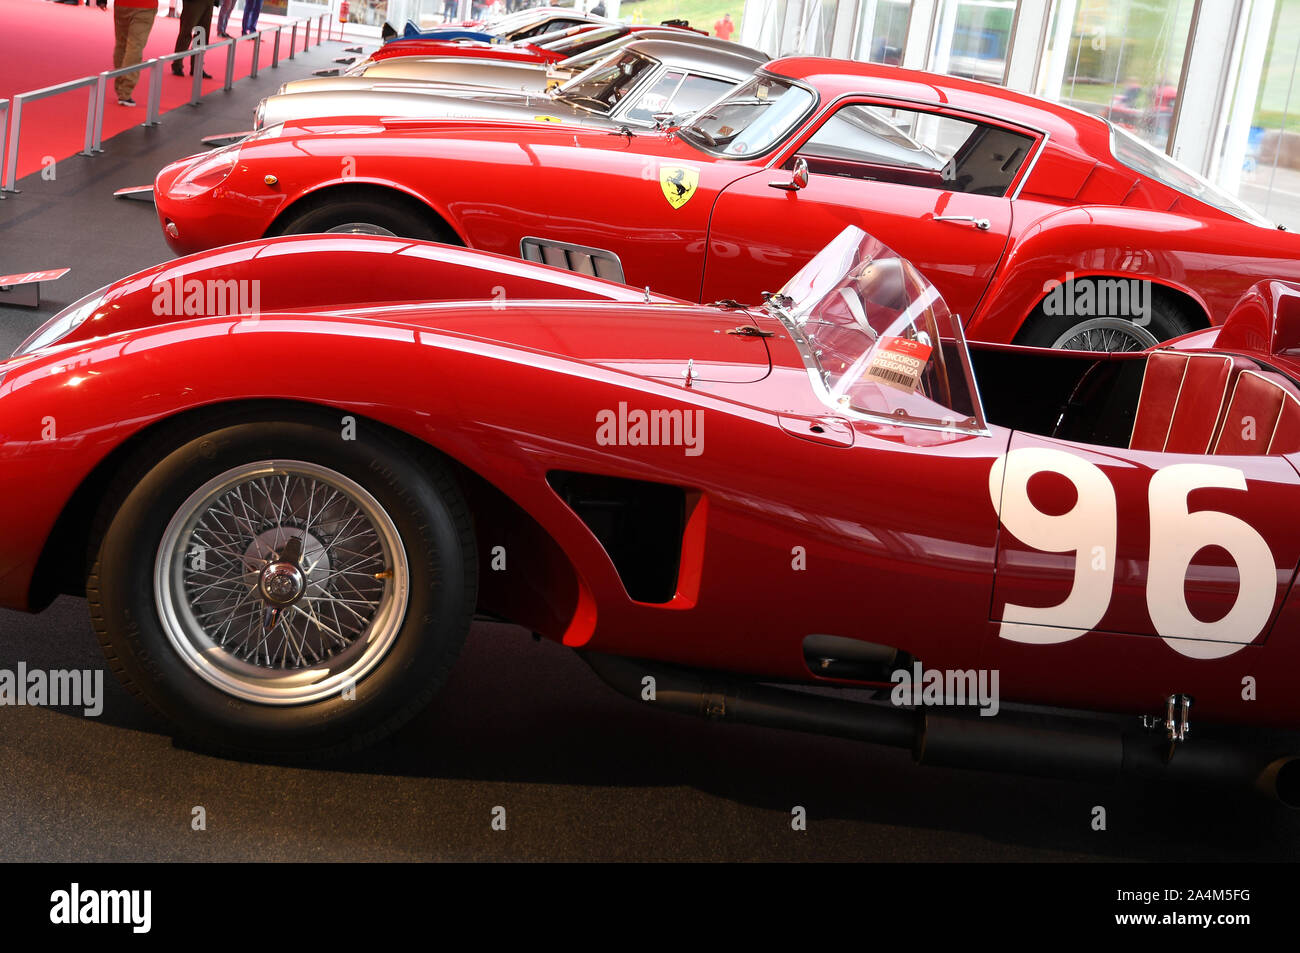 Vintage Ferrari High Resolution Stock Photography And Images Alamy